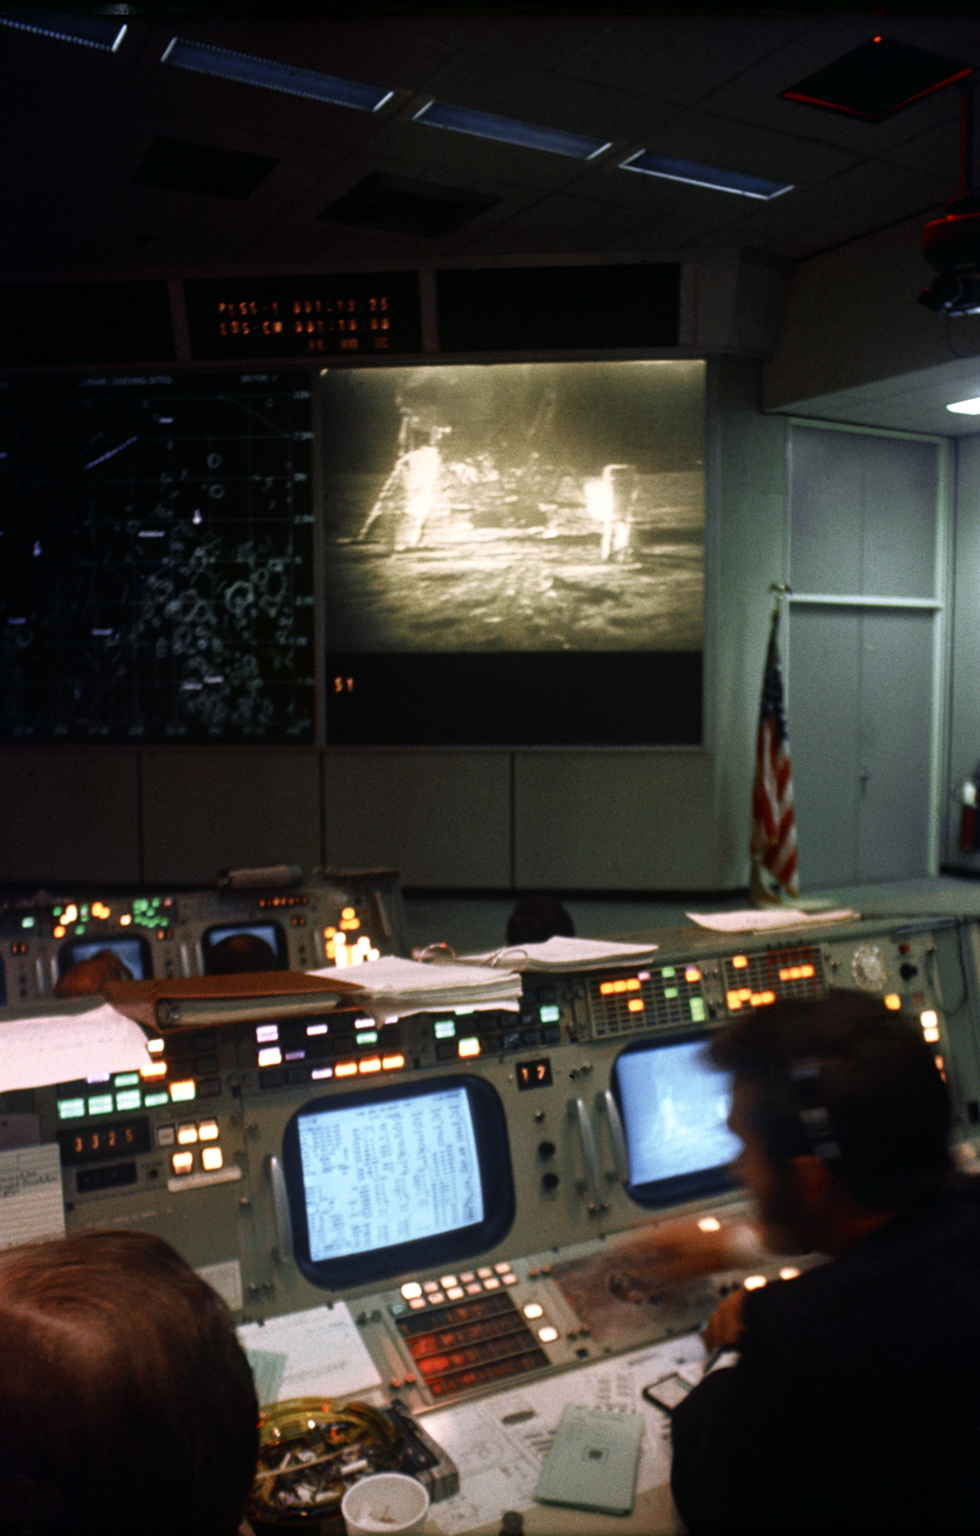 Interior view of the Mission Control Center during the Apollo 11 lunar spacewalk. The TV monitor shows astronauts Neil Armstrong and Buzz Aldrin on the surface of the Moon. Image Credit: NASA